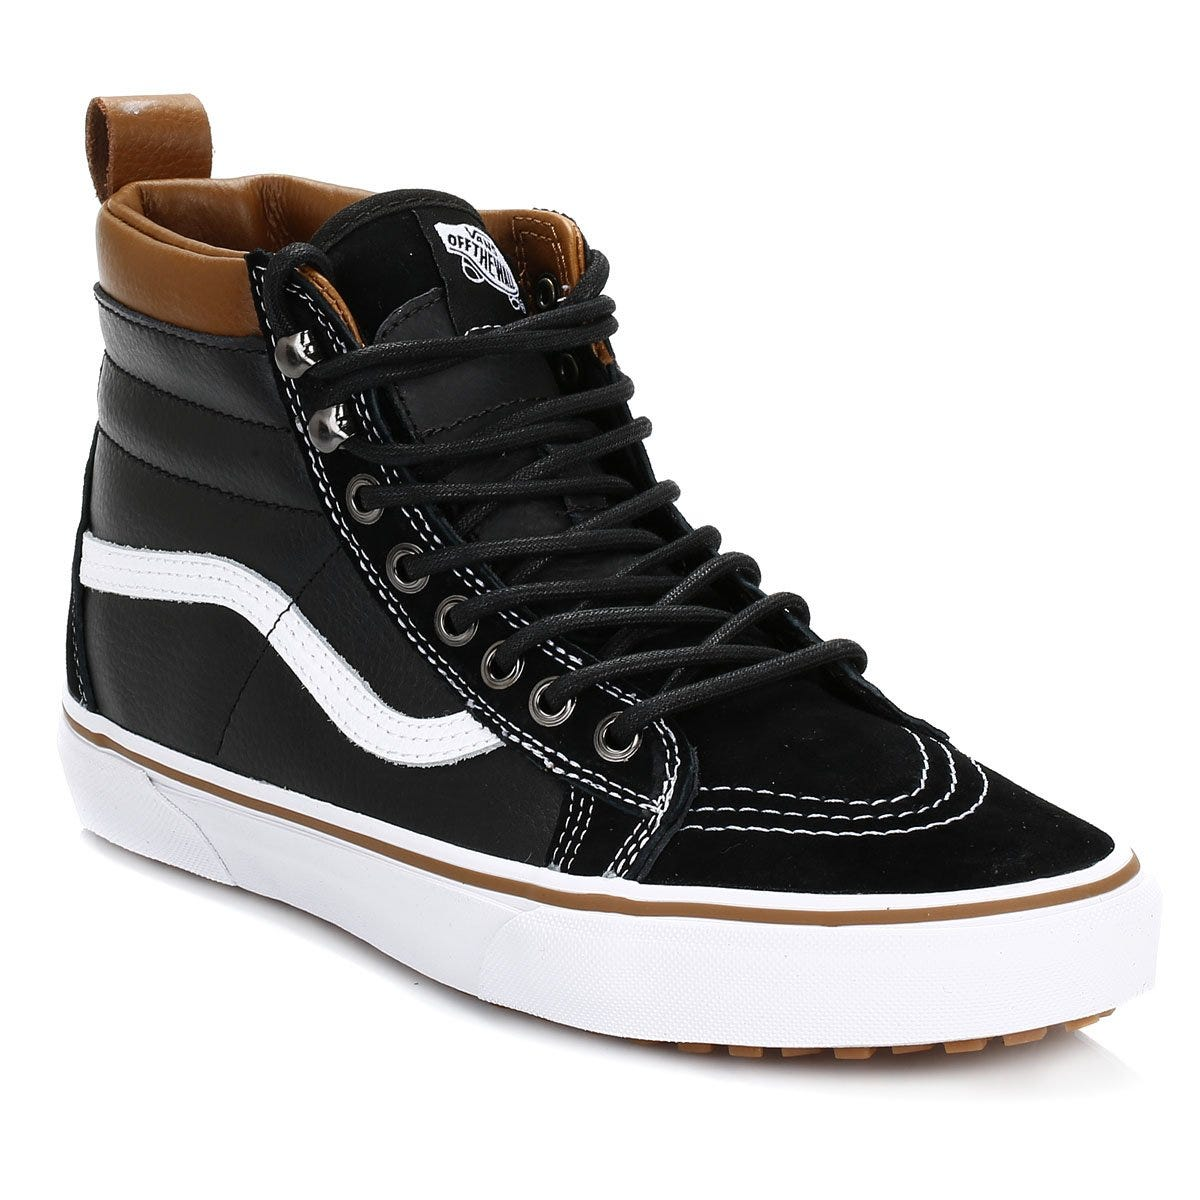 vans homme noir true white sk8 hi mte baskets achat et vente. Black Bedroom Furniture Sets. Home Design Ideas